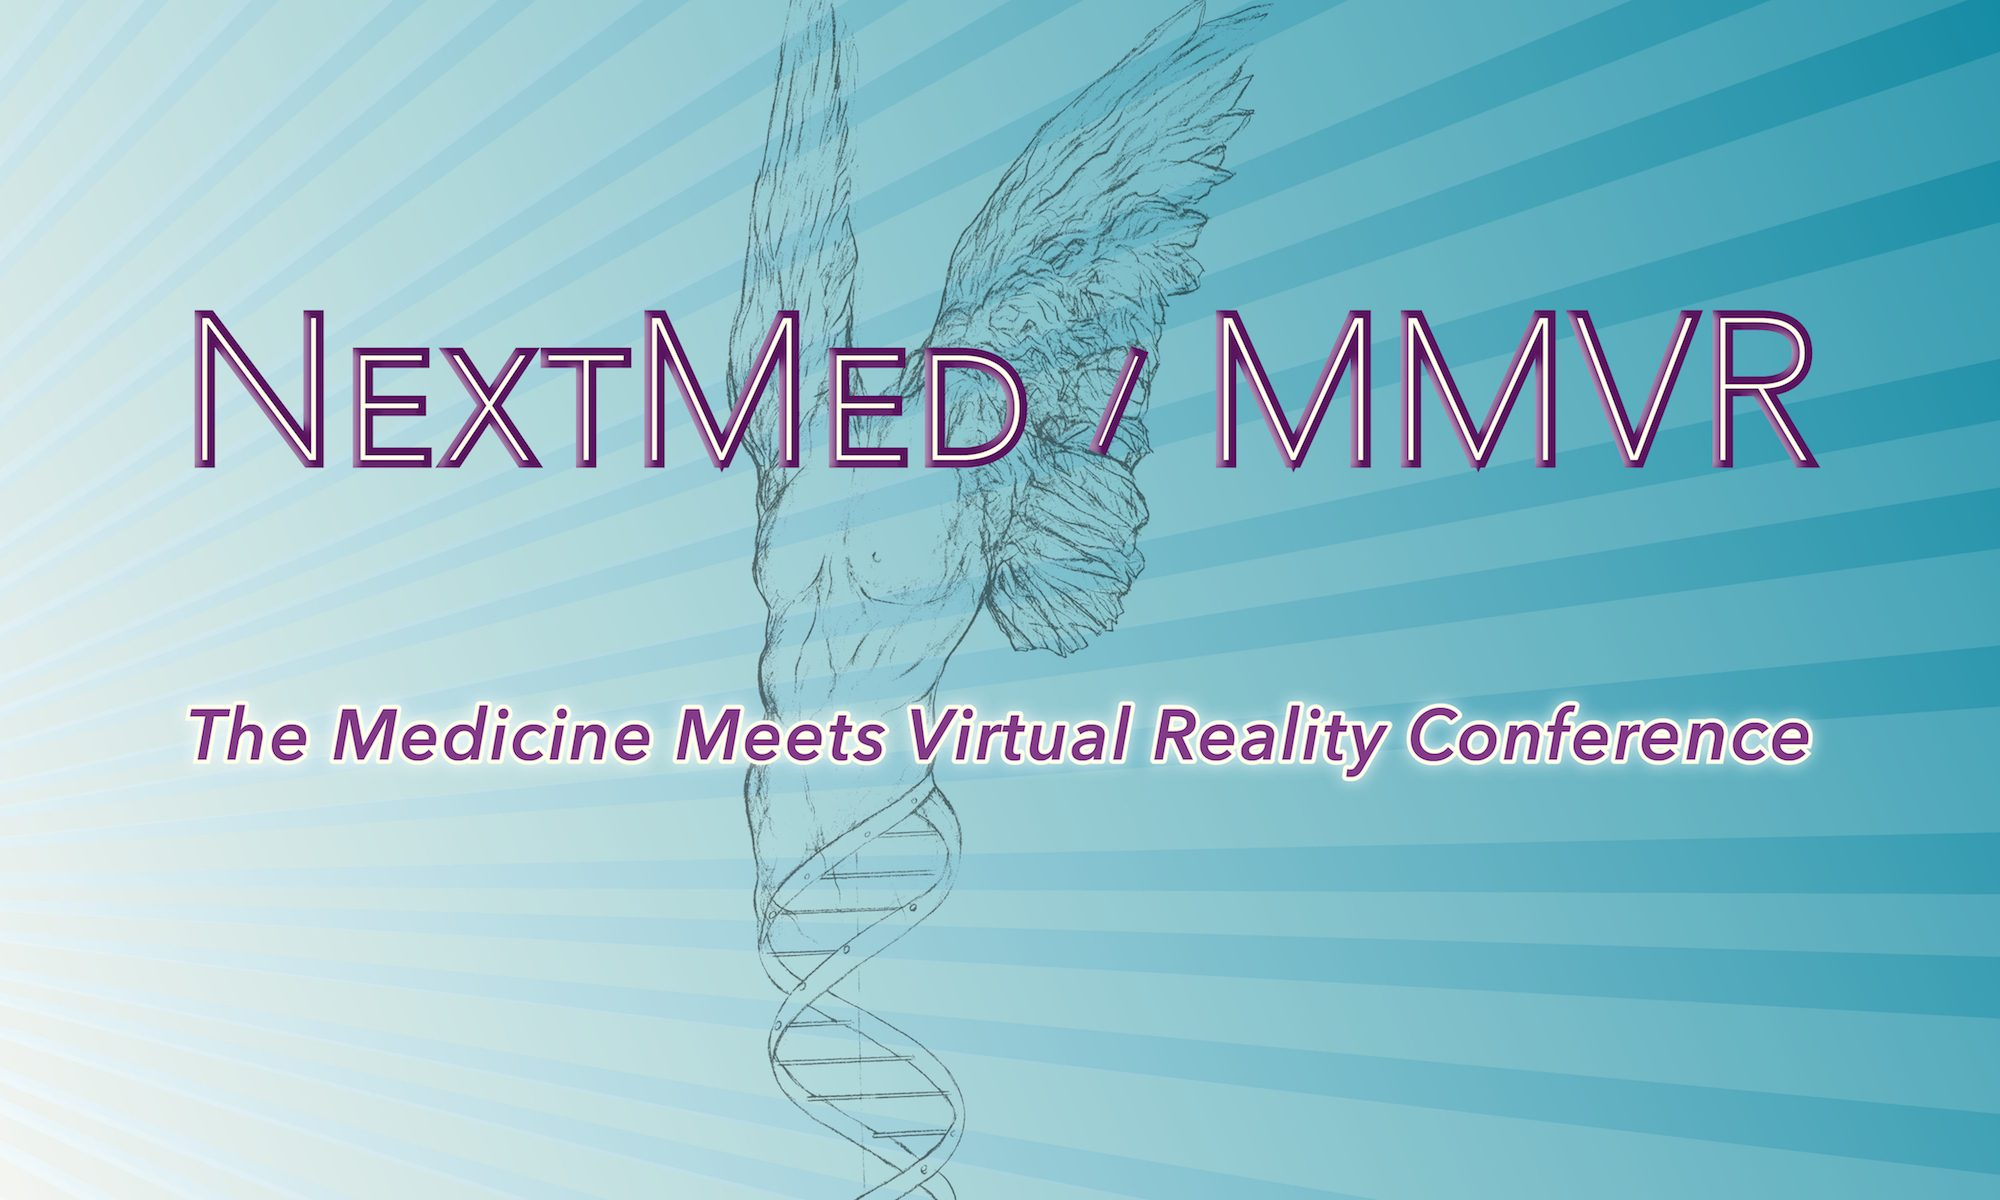 NextMed / MMVR: Medicine Meets Virtual Reality